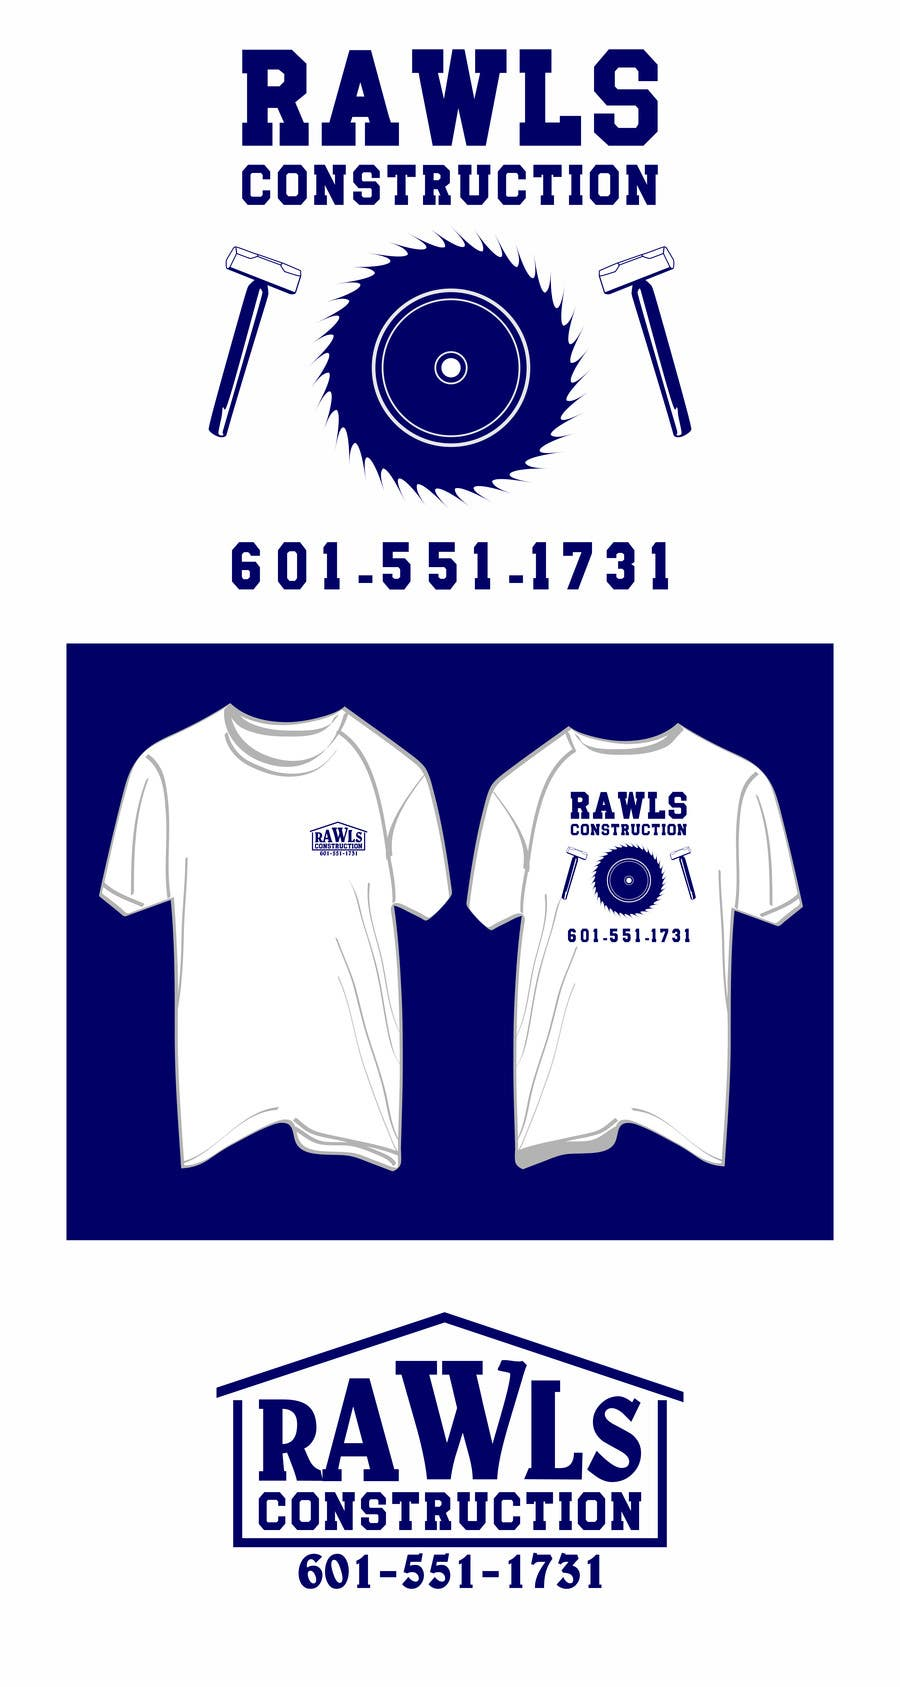 T shirt design using coreldraw -  13 For Design A T Shirt Using Corel Draw For A Construction Business By